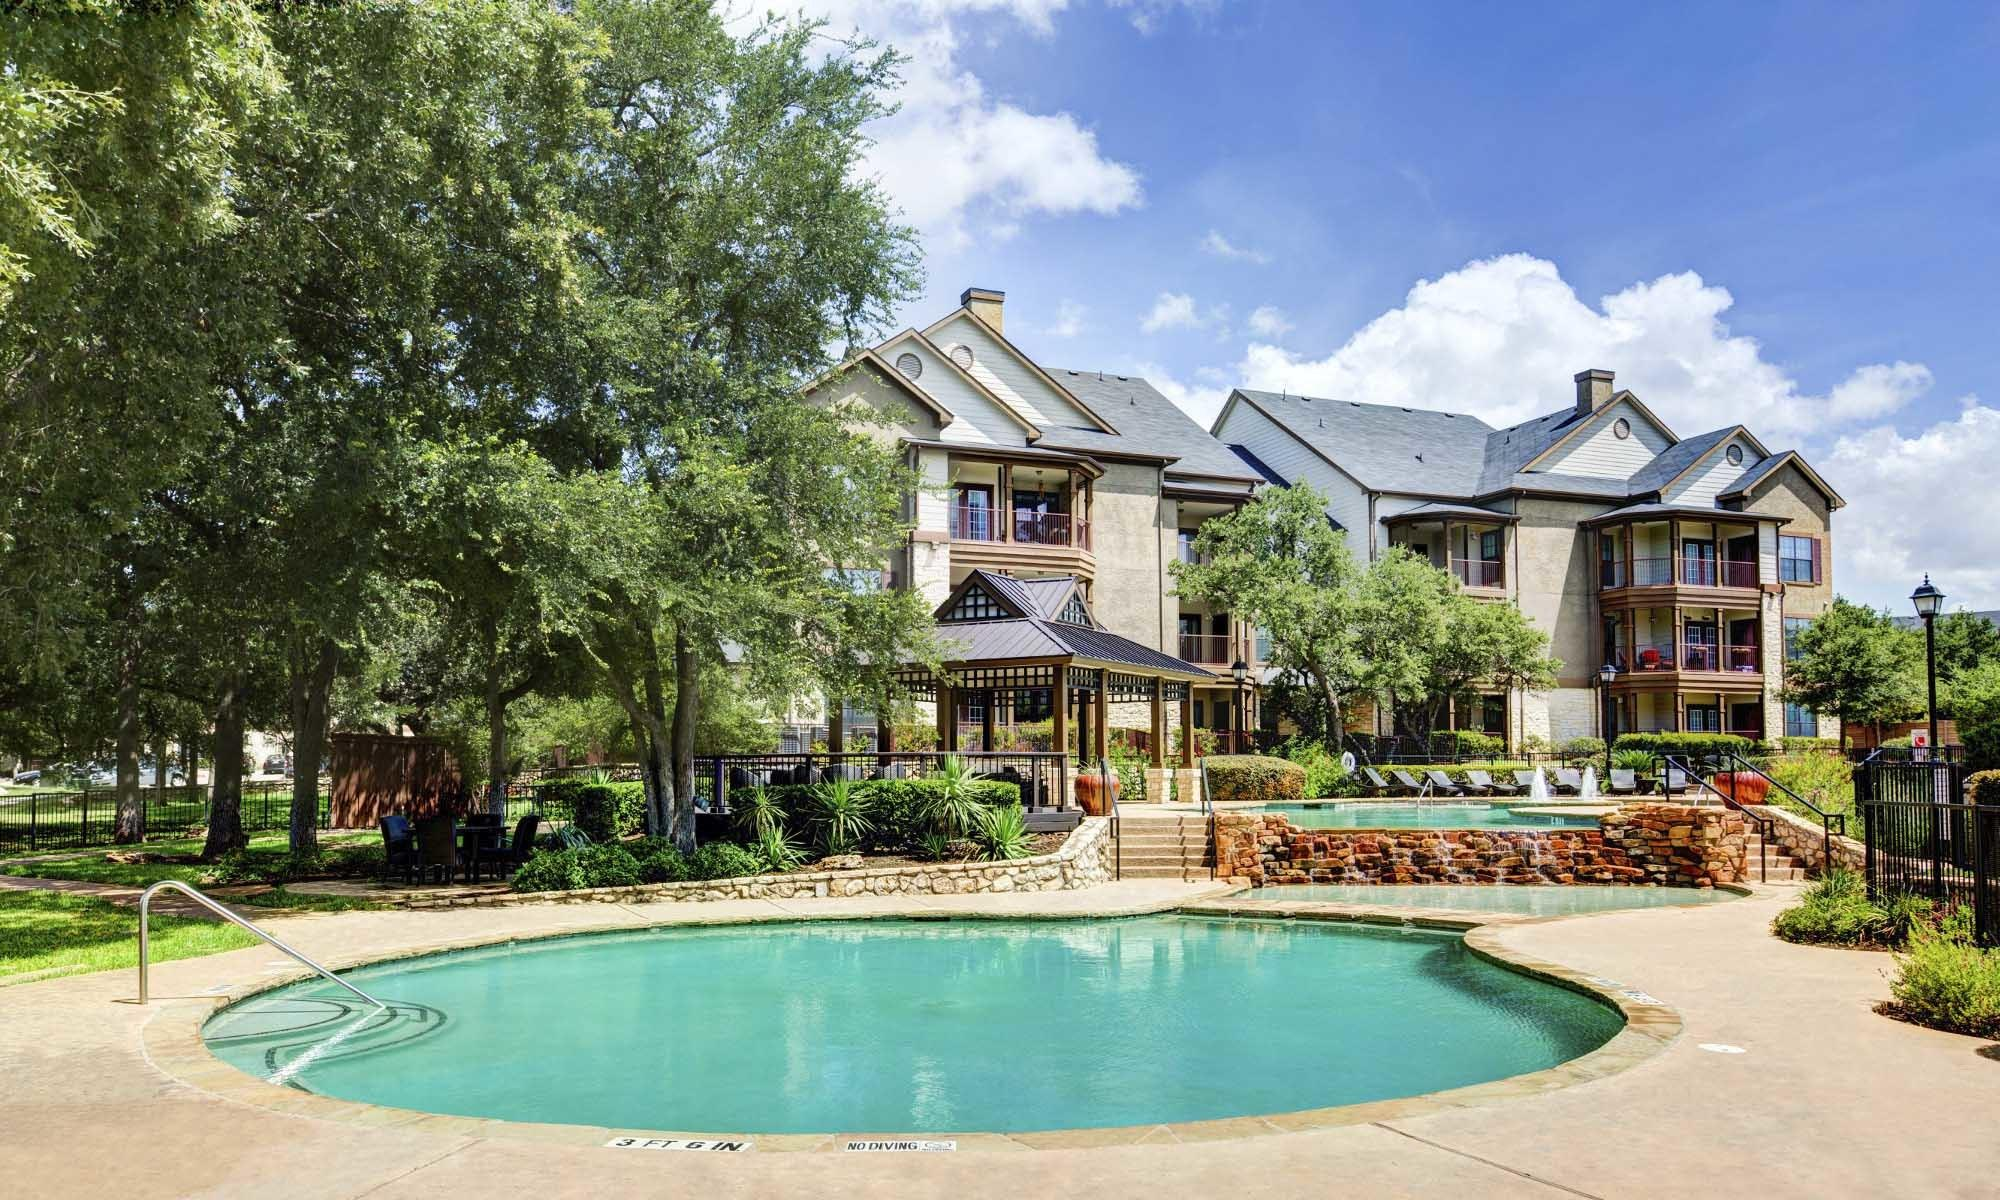 Apartments in Austin  TX. Apartments for Rent in North Austin  TX   The Marquis at Brushy Creek